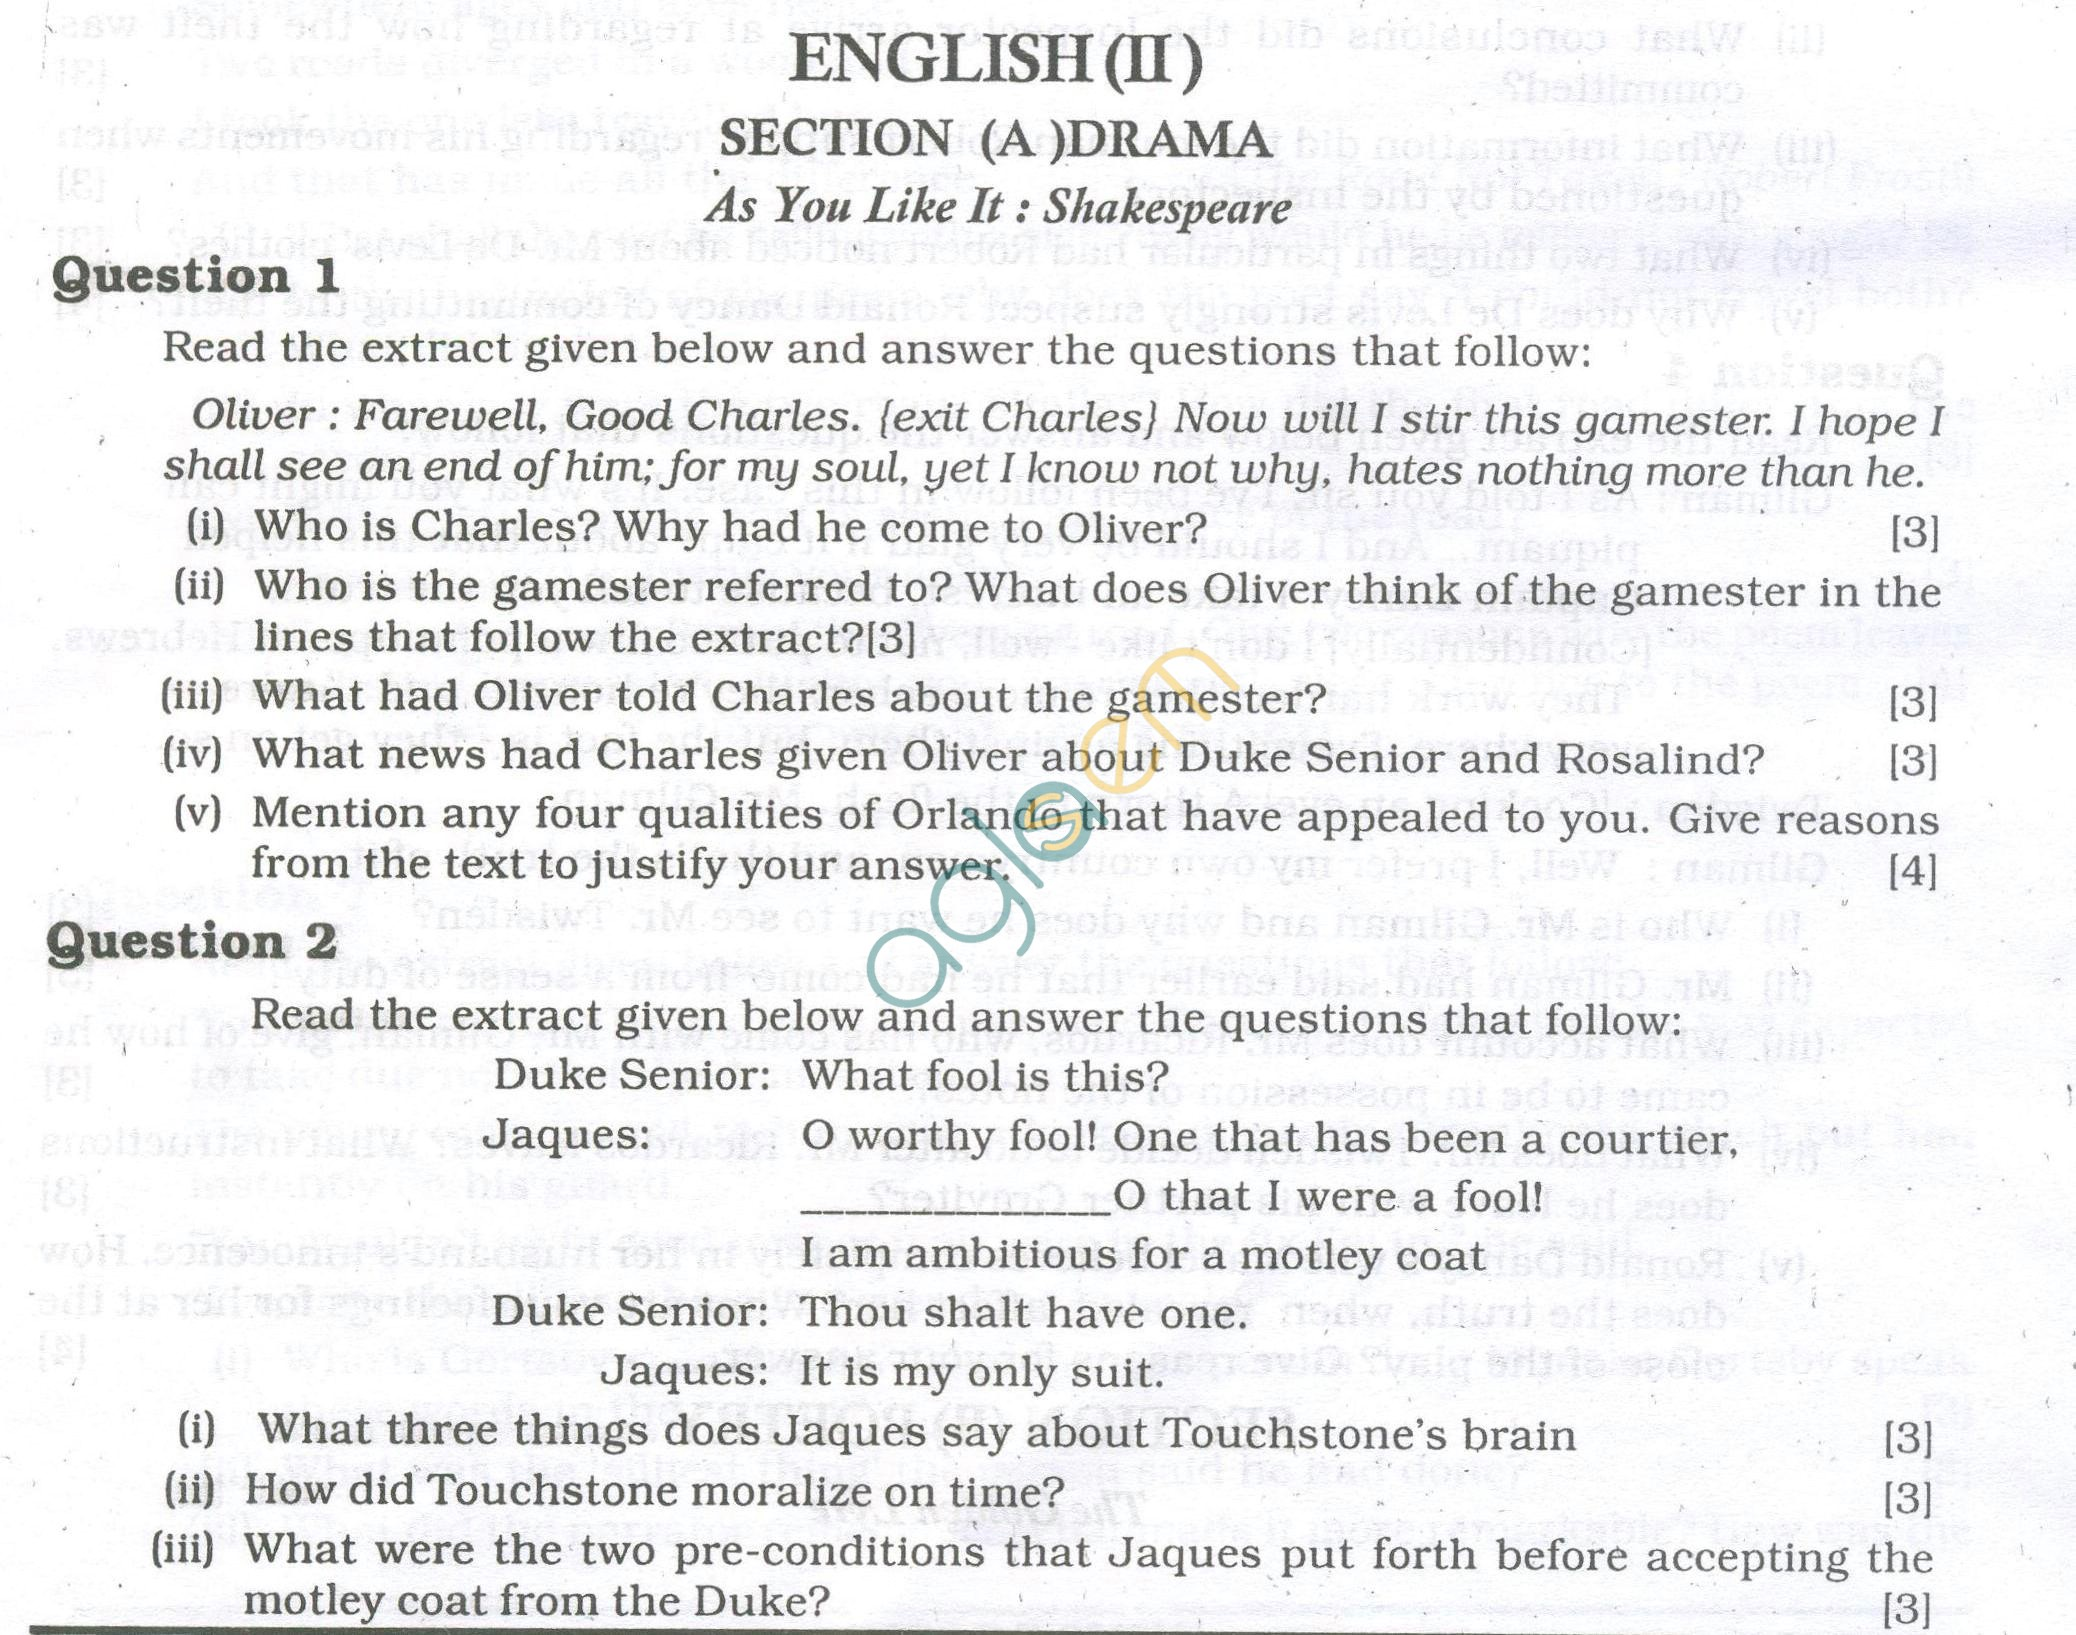 ICSE Question Papers 2013 for Class 10 - English Paper - 2